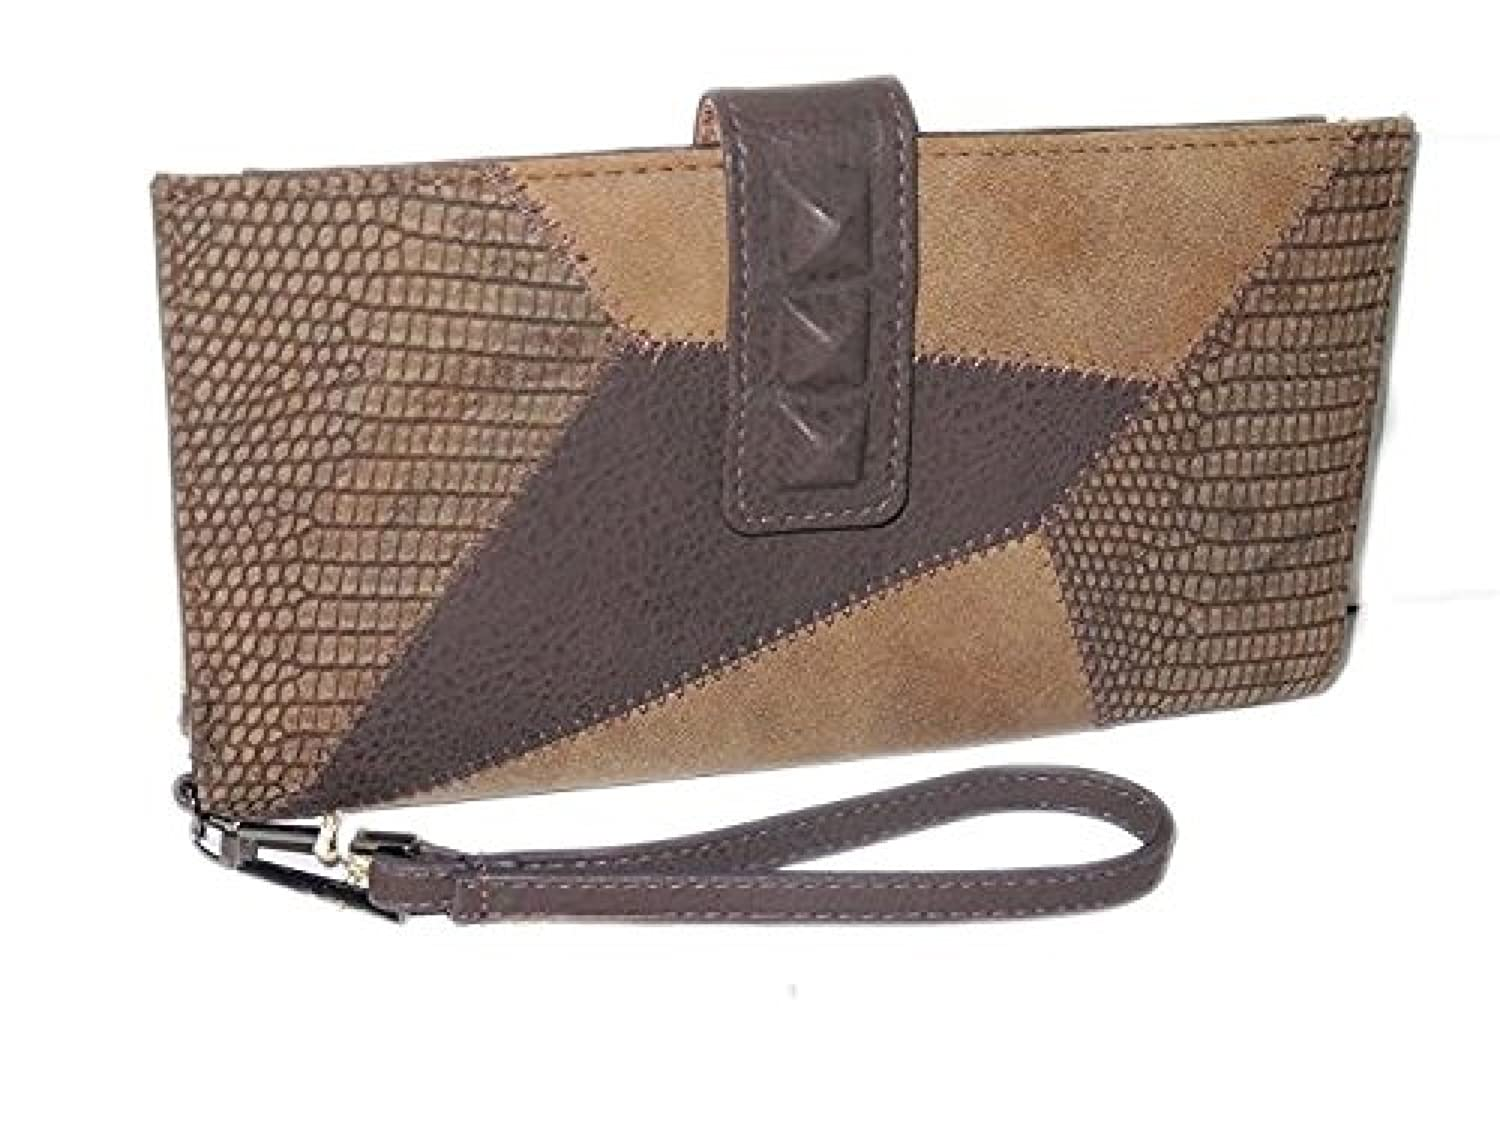 Jessica Simpson Brown Truffle Leather Large Wristlet Wallet